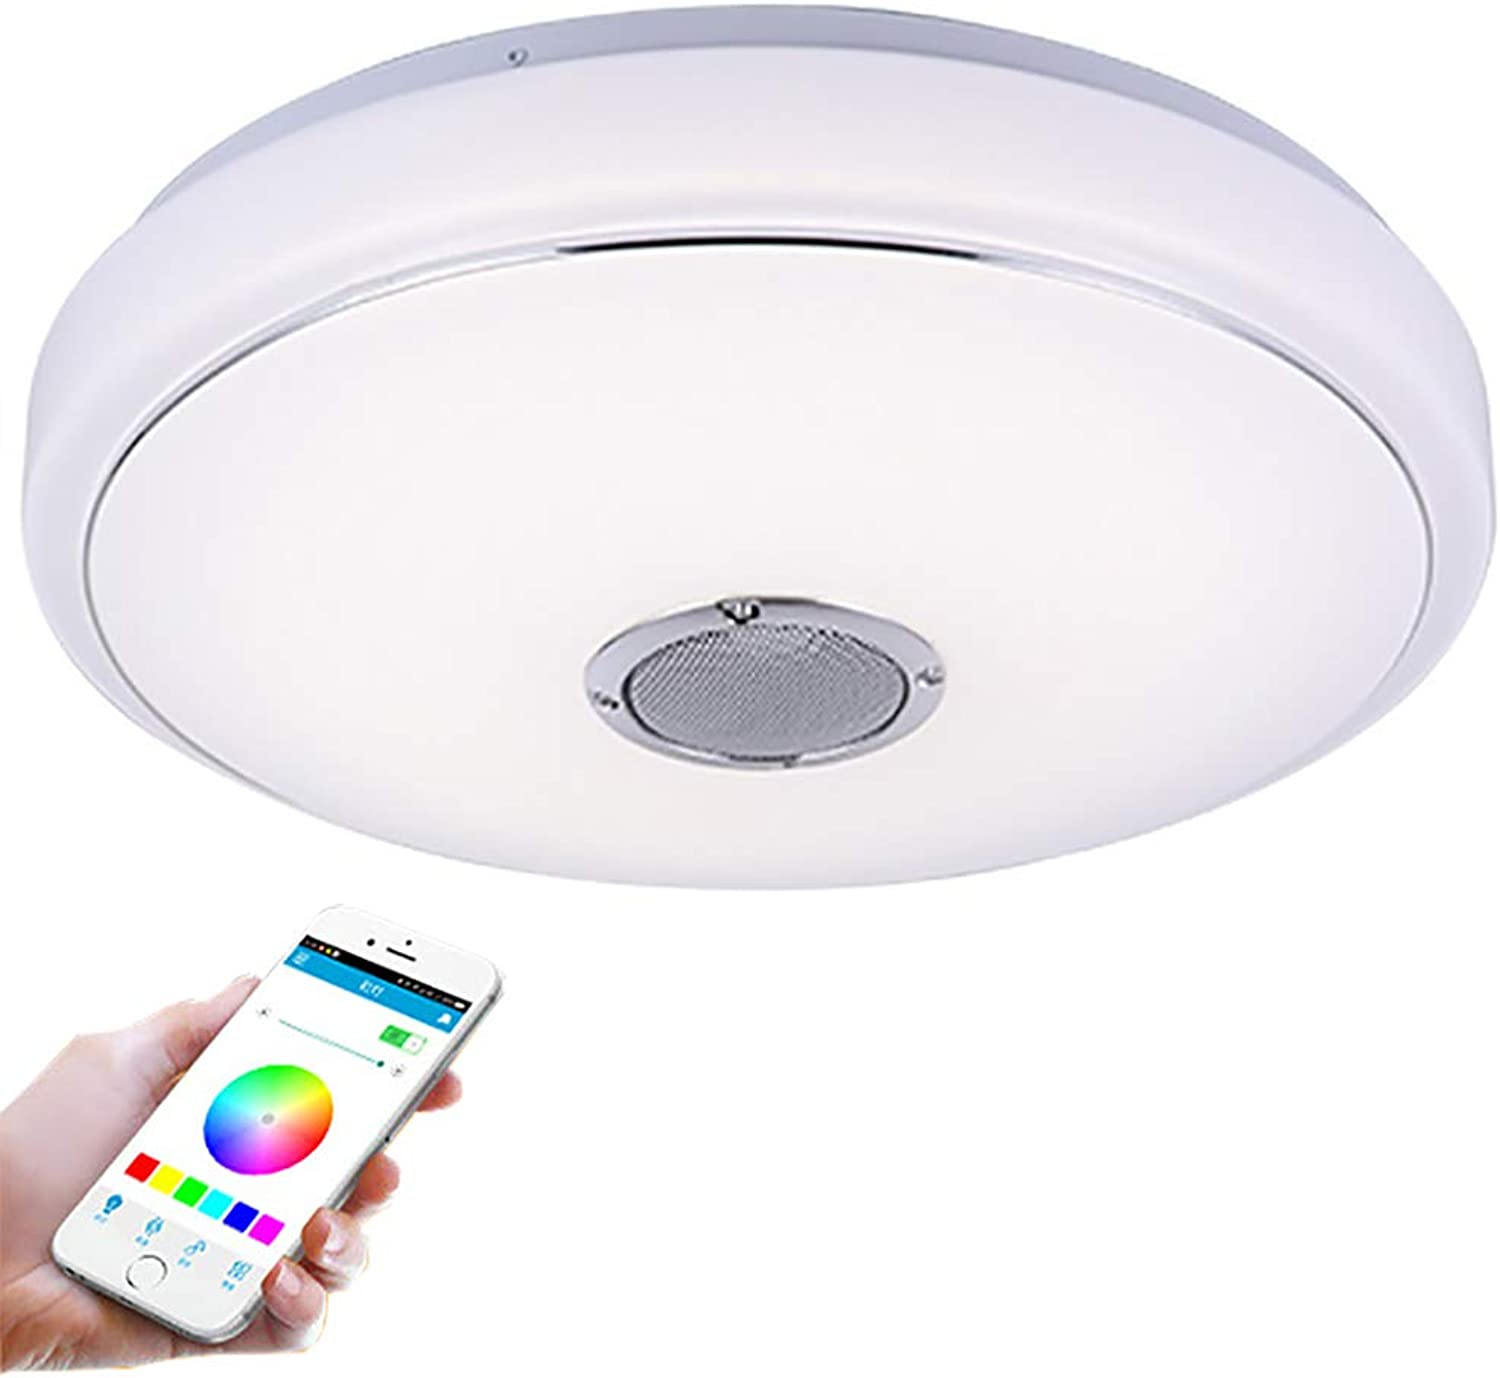 CMES LED Ceiling Light Mit Blautooth Speaker Music Sync Mount Dimmable Ceiling Lampen-Stamm Für Living Room Bedroom Dining Room